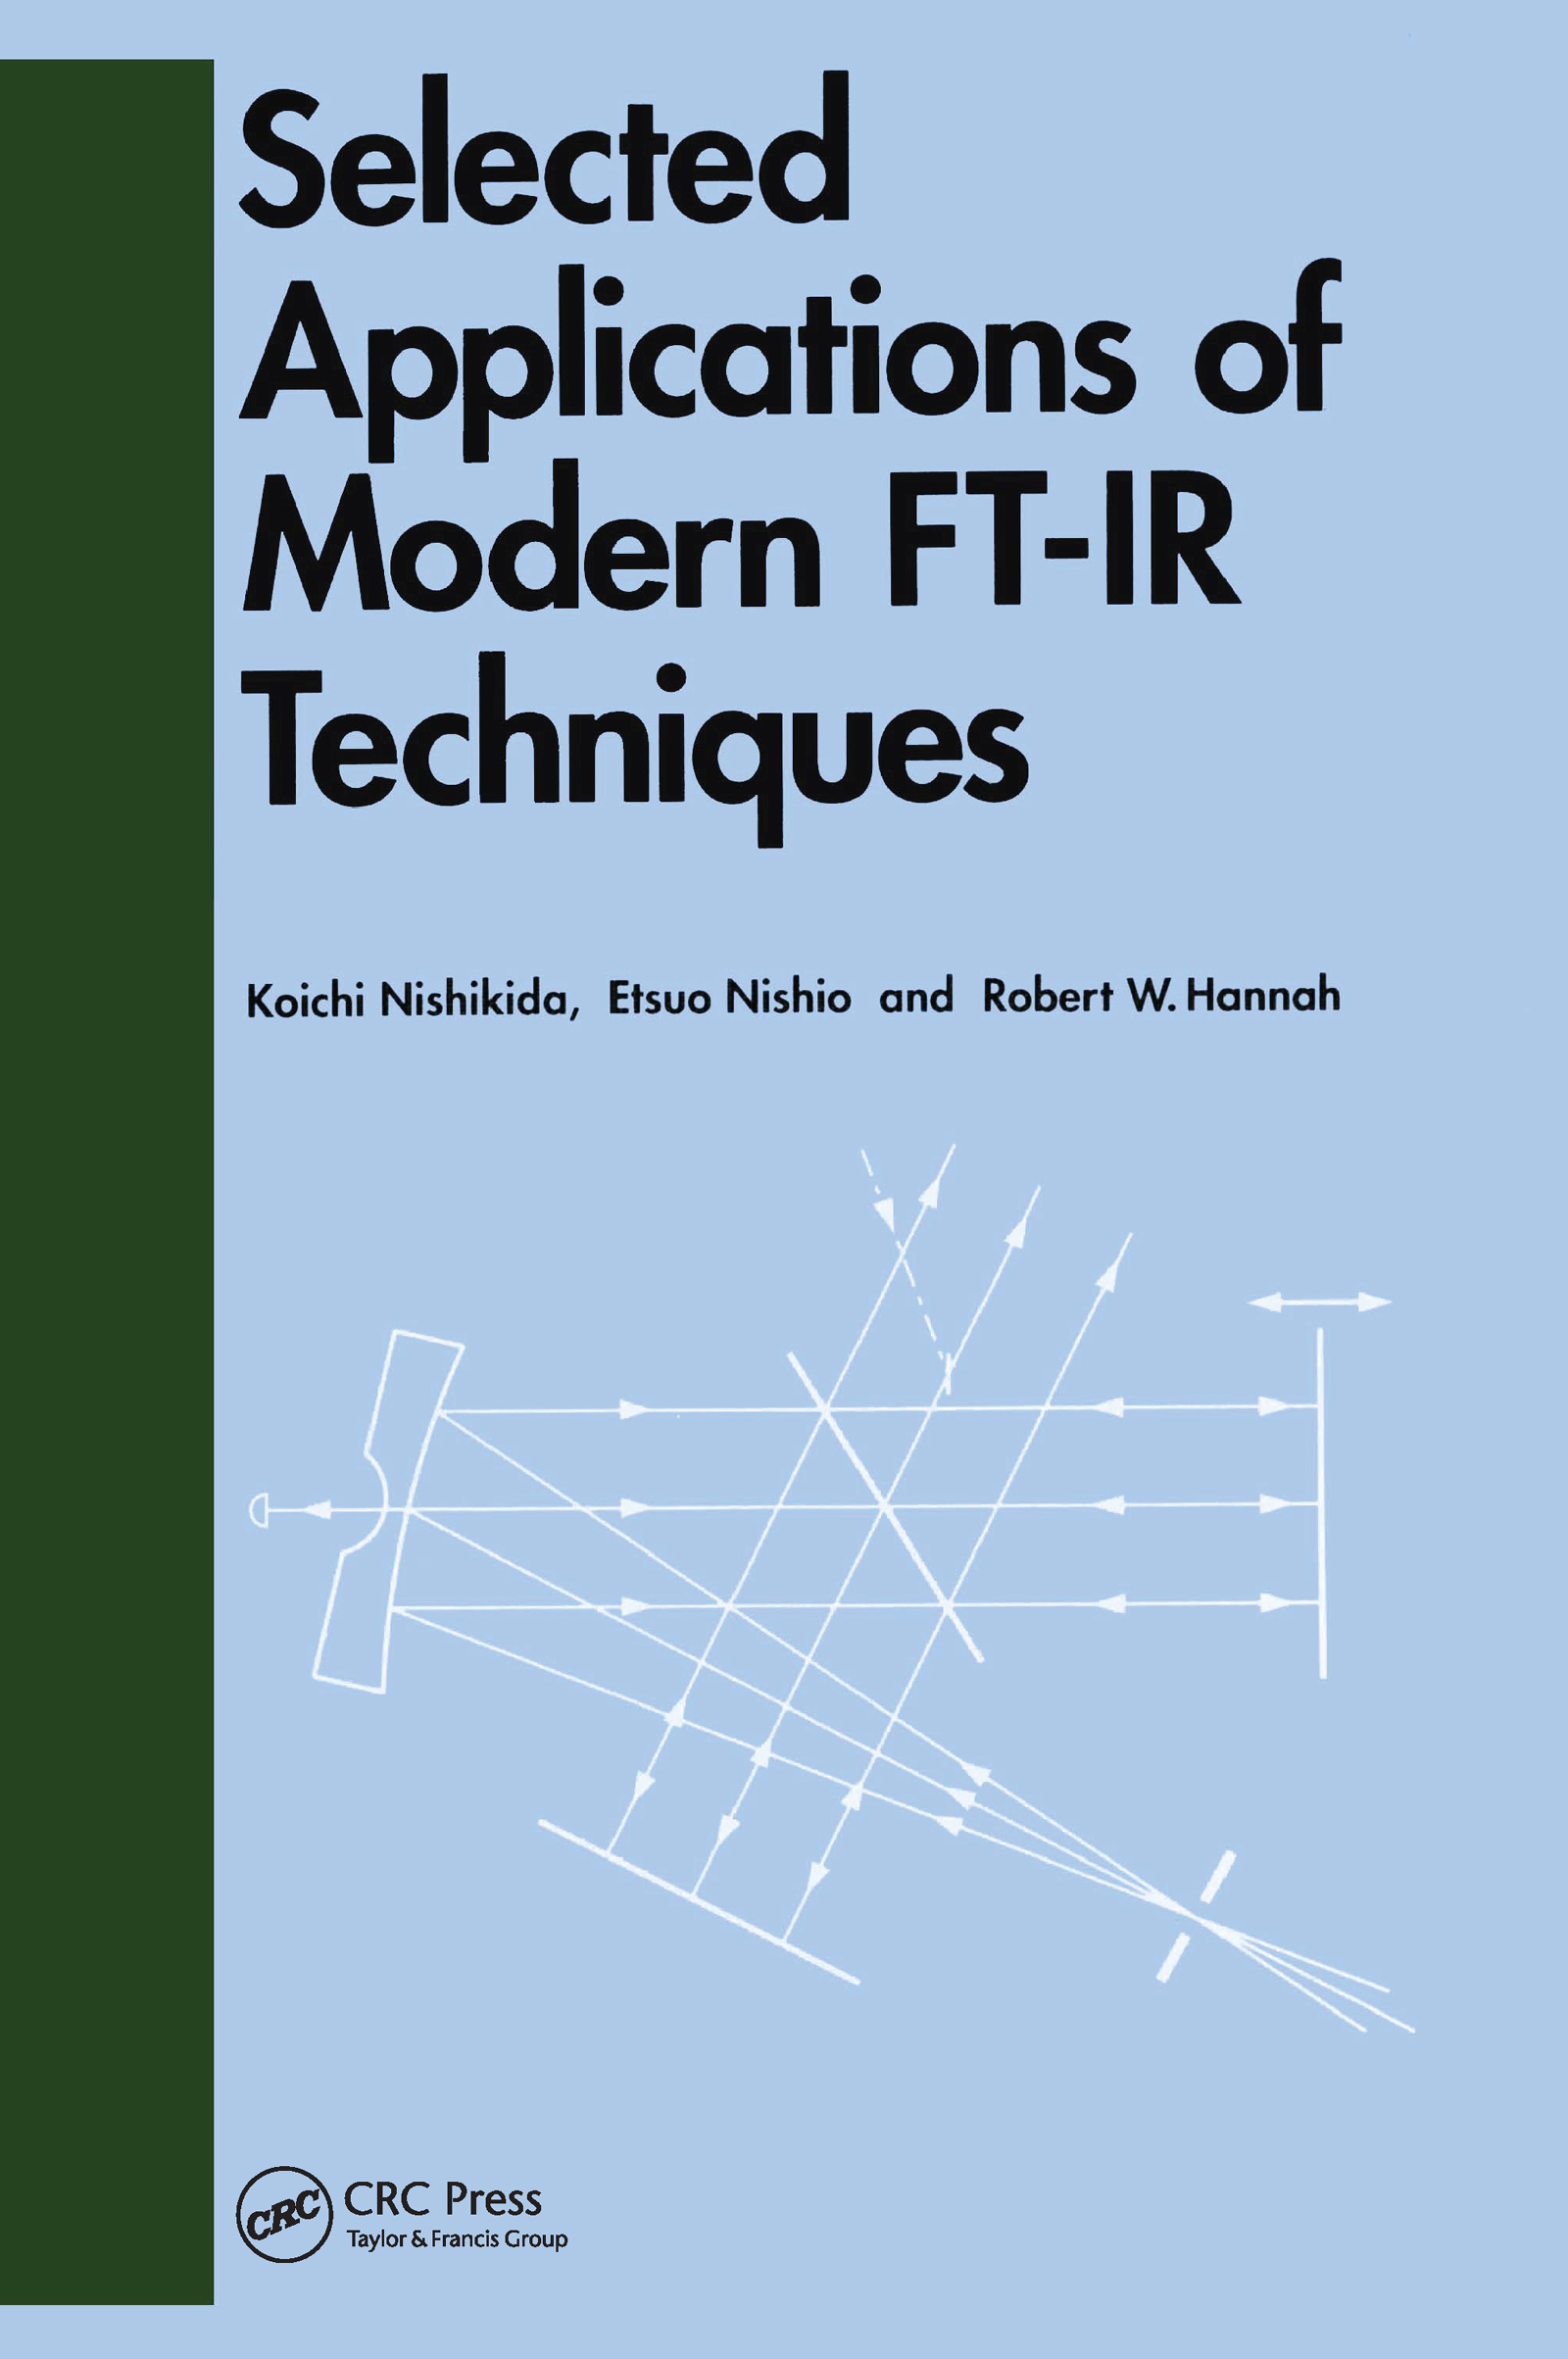 Selected Applications of Modern FT-IR Techniques